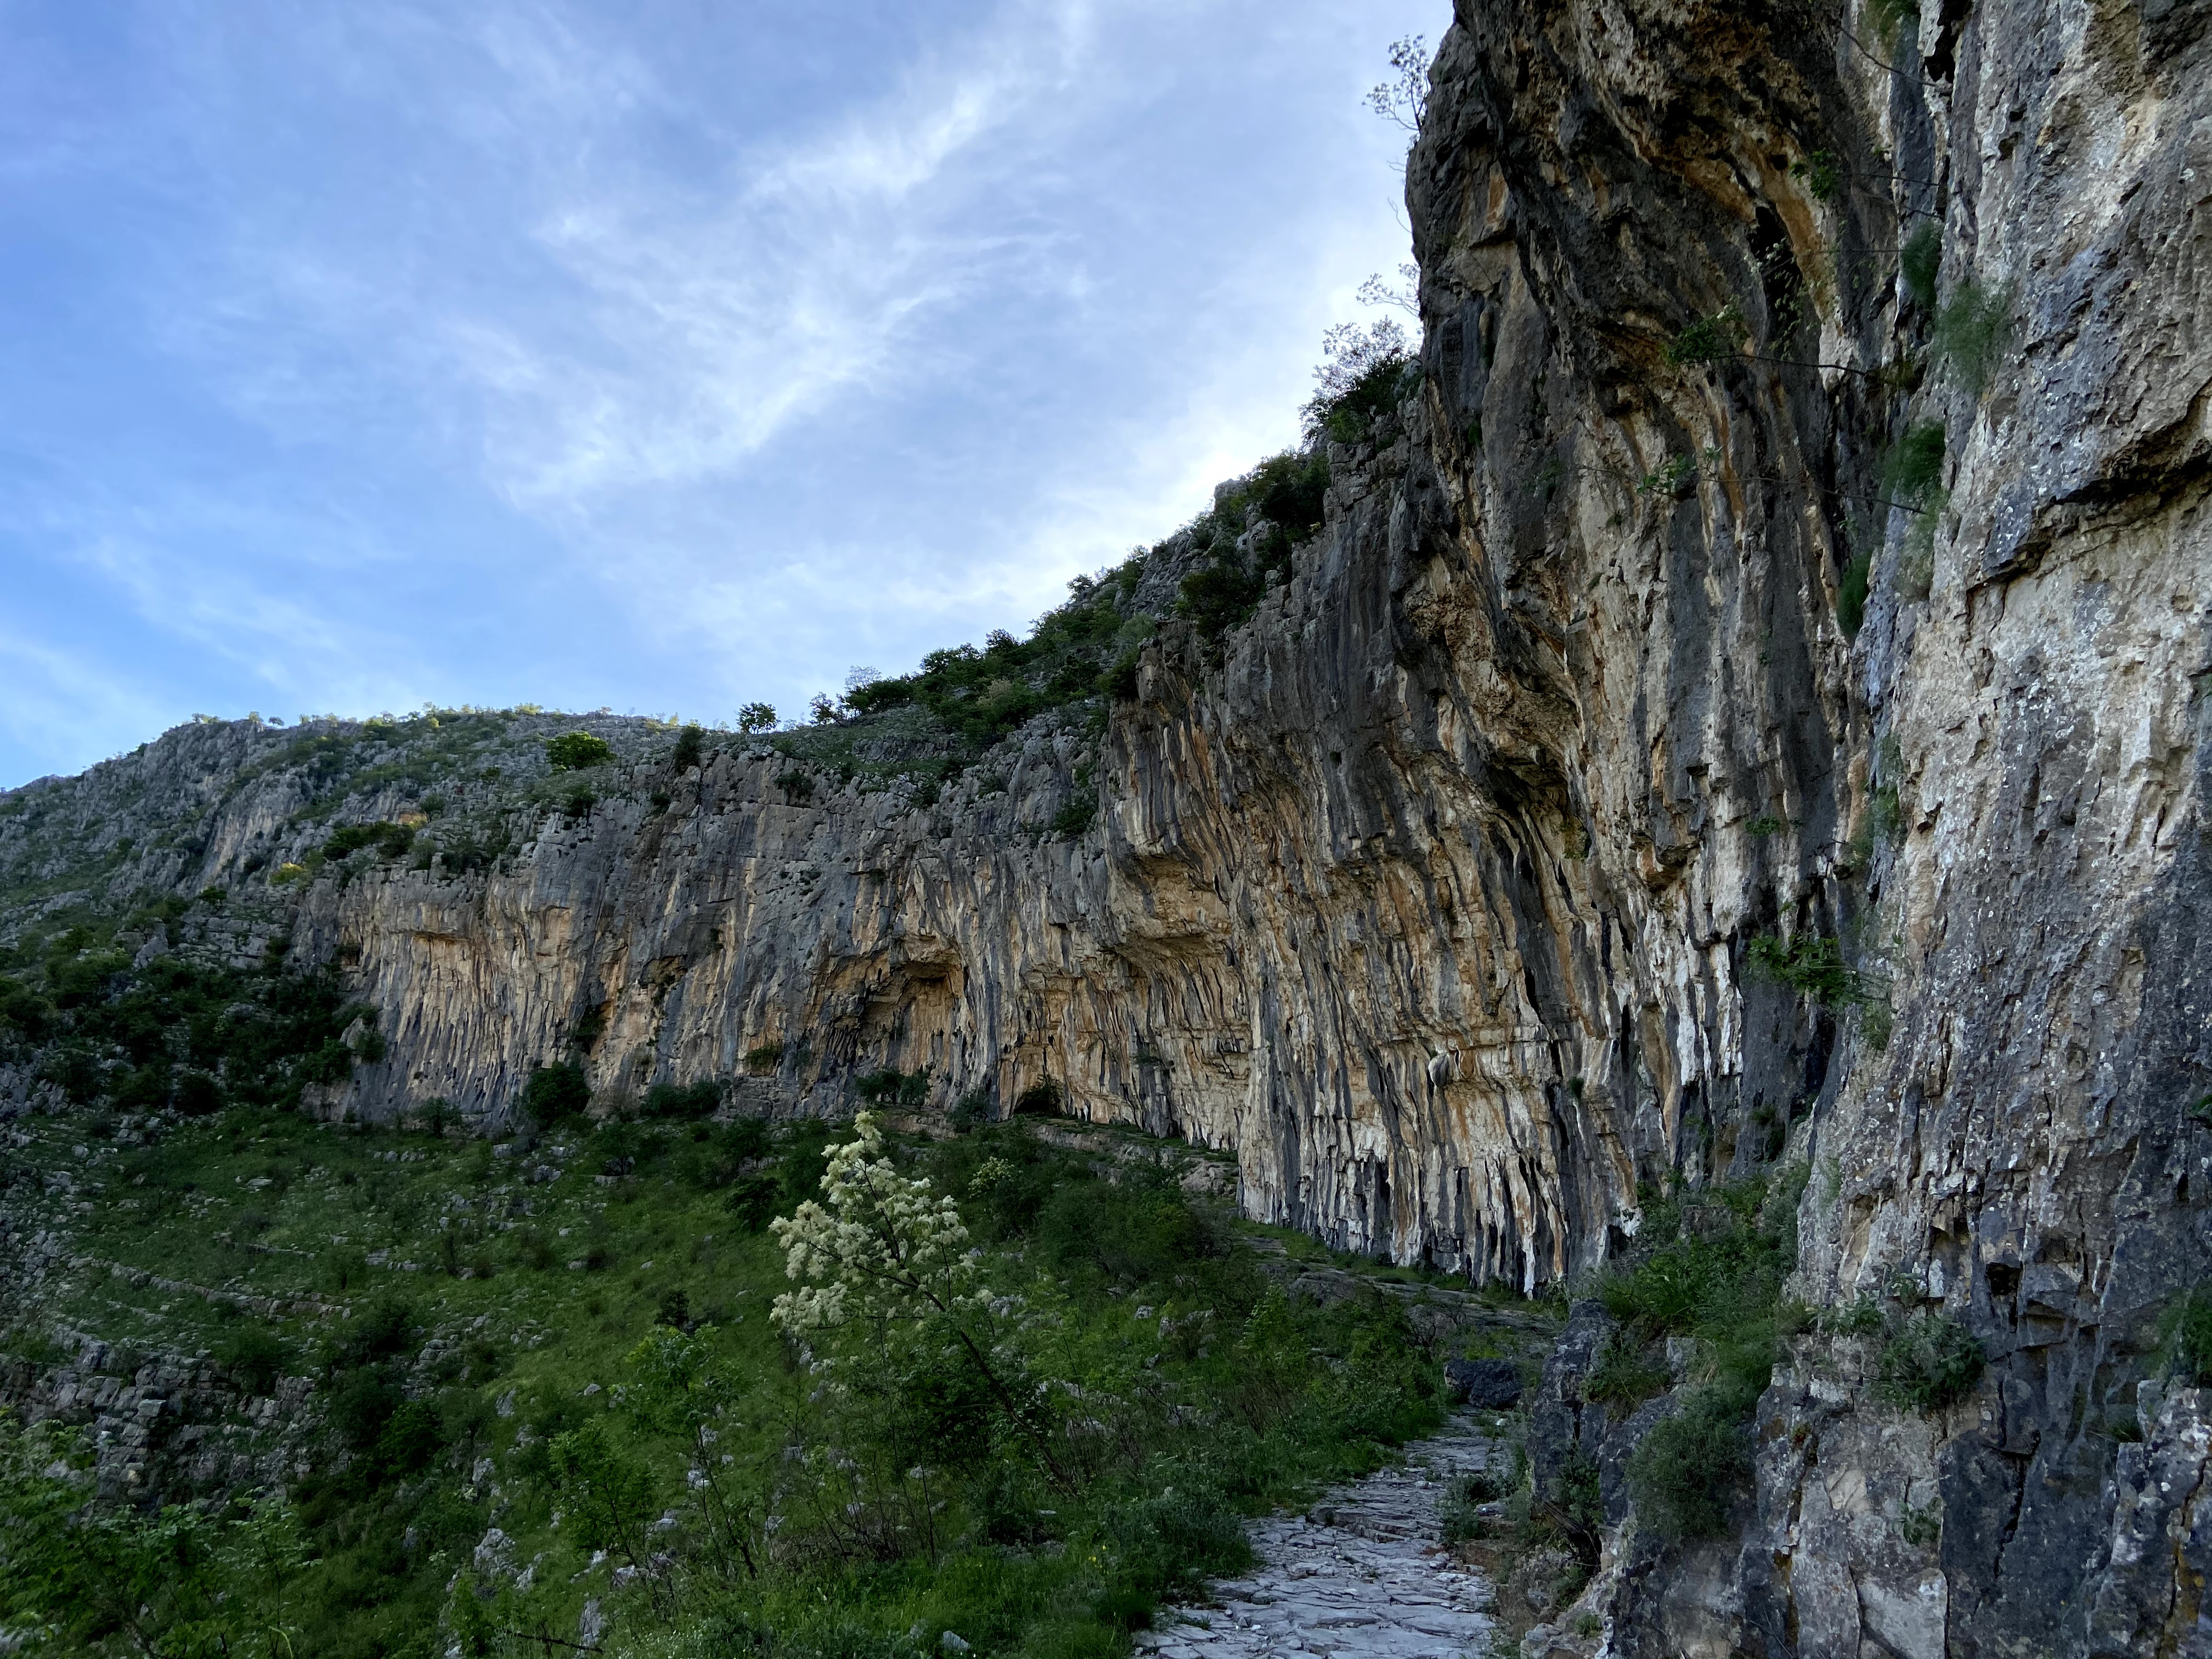 Steep crag which is covered in tufas and is very featured.